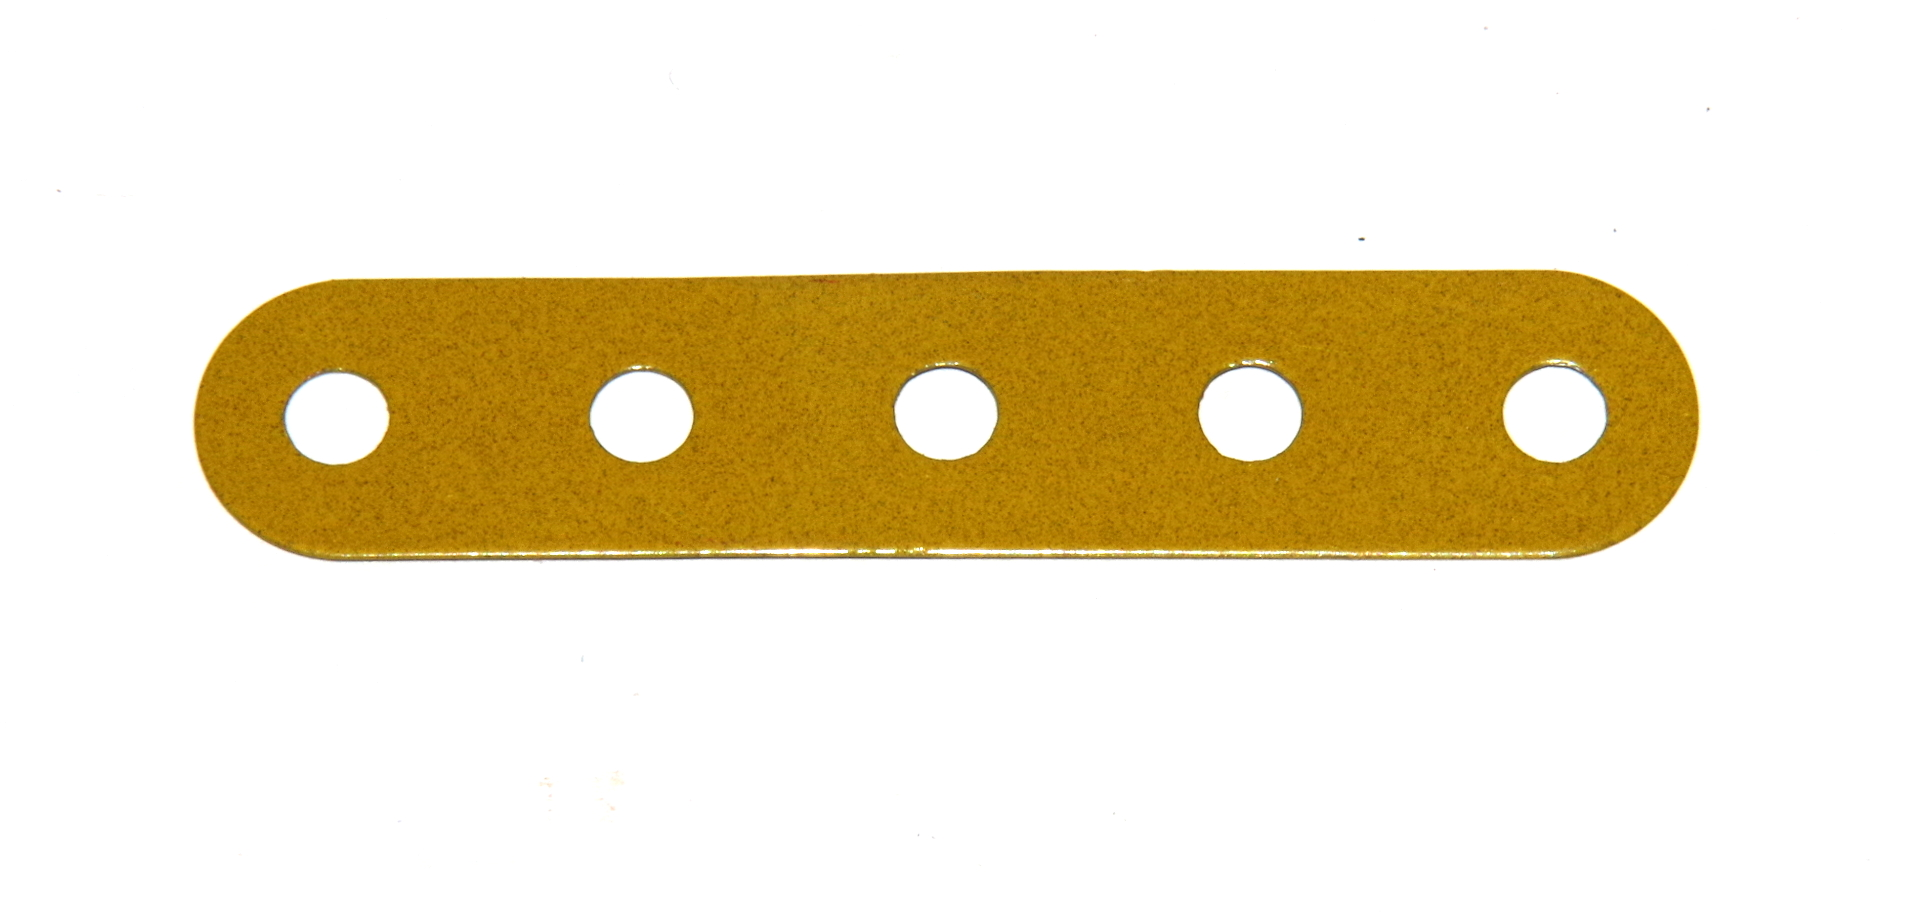 B487 Flexible Strip 5 Hole Mustard Yellow Original